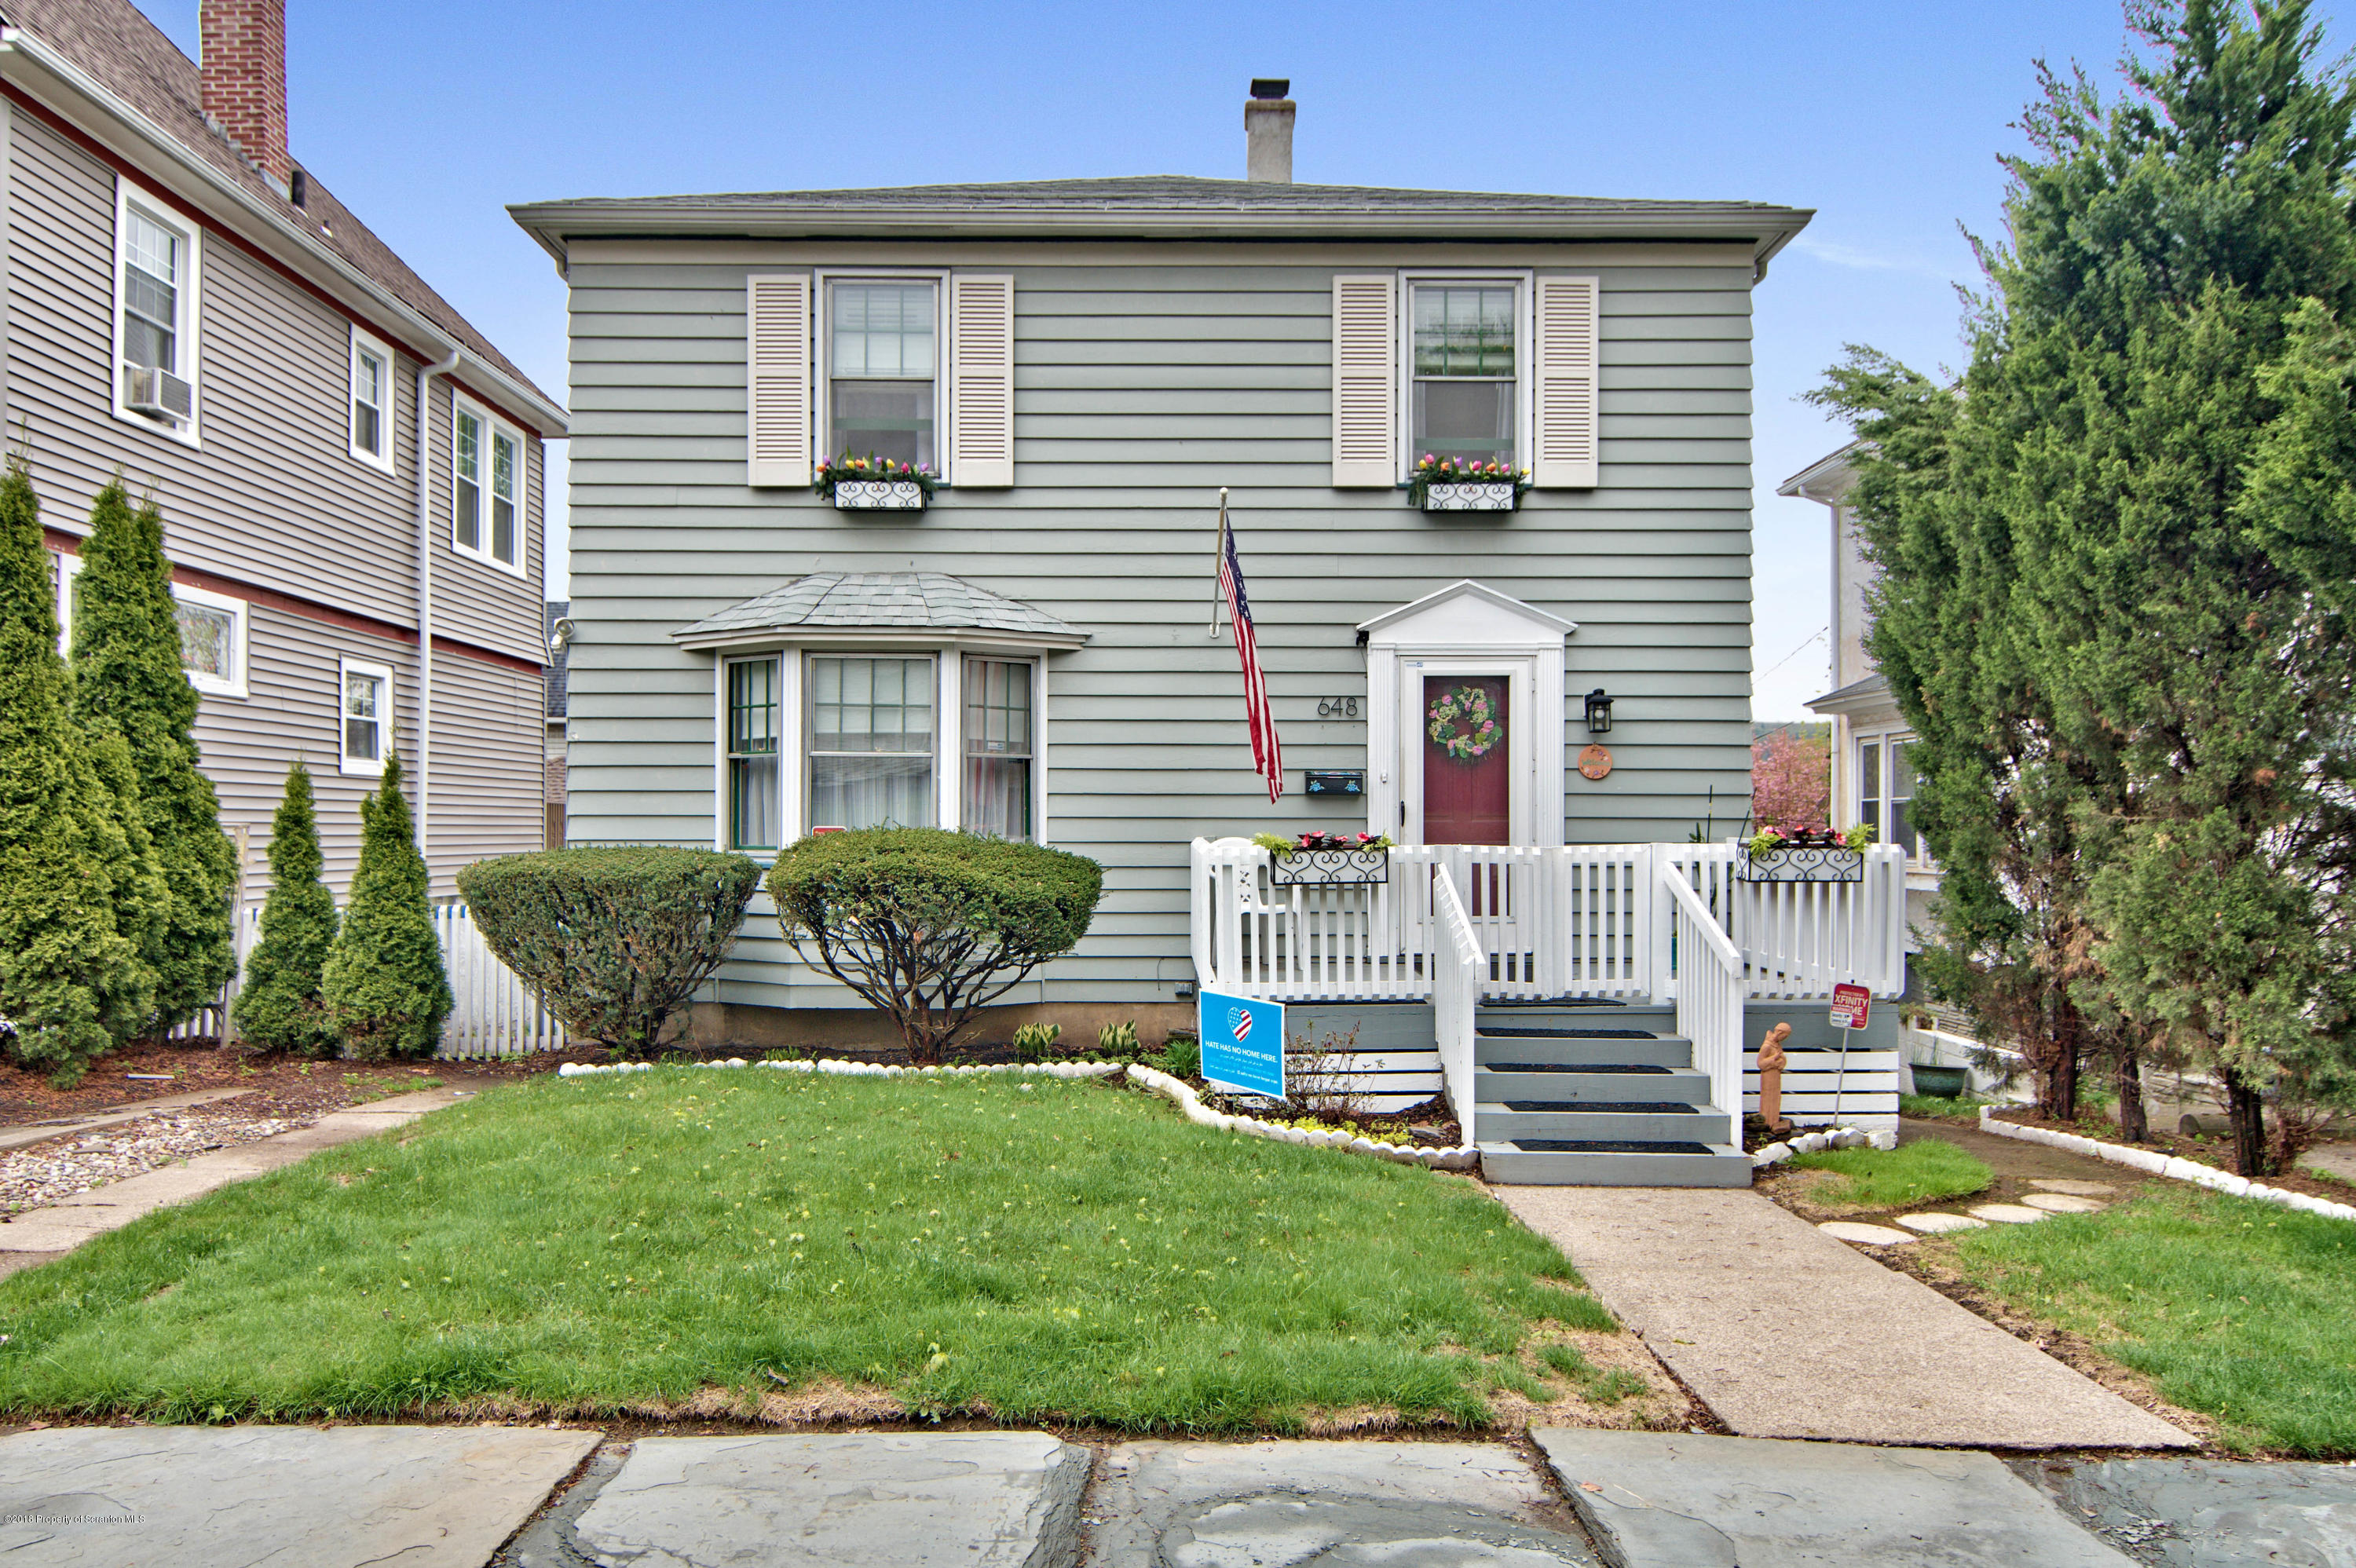 648 Irving Ave, Scranton, Pennsylvania 18510, 4 Bedrooms Bedrooms, 8 Rooms Rooms,2 BathroomsBathrooms,Single Family,For Sale,Irving,21-154